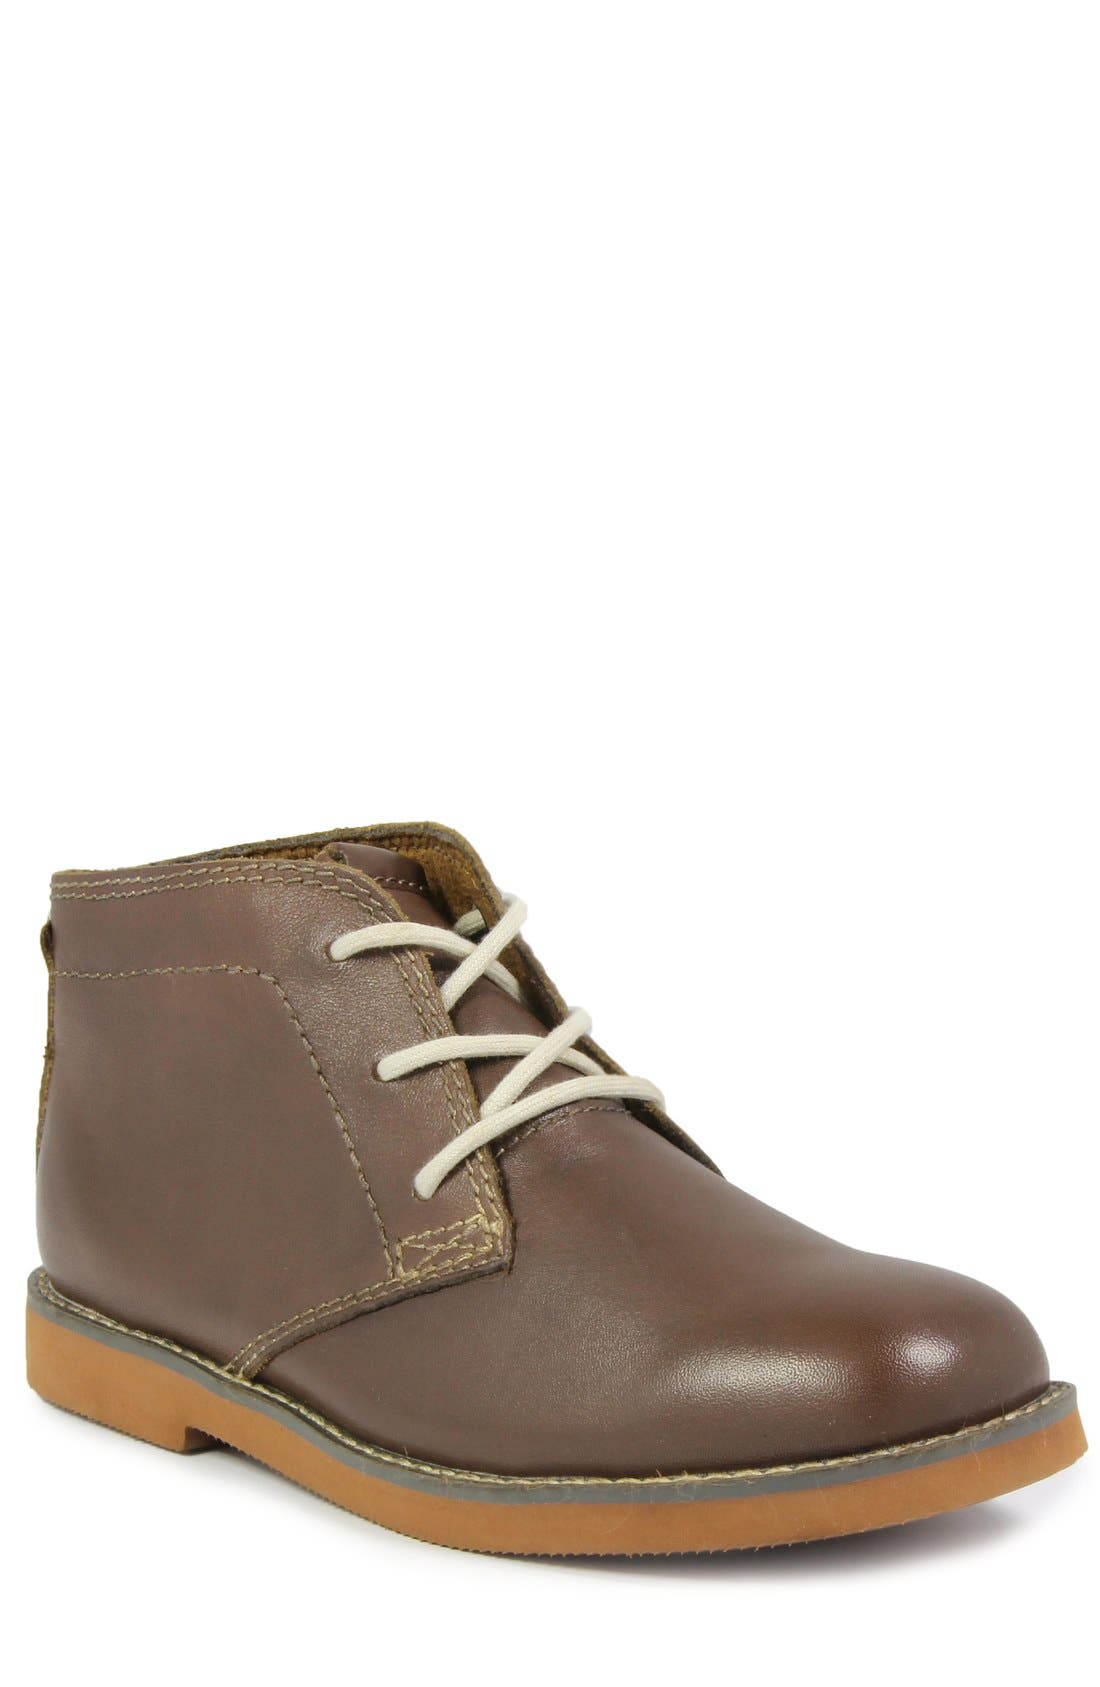 'Bucktown' Chukka Boot,                             Main thumbnail 2, color,